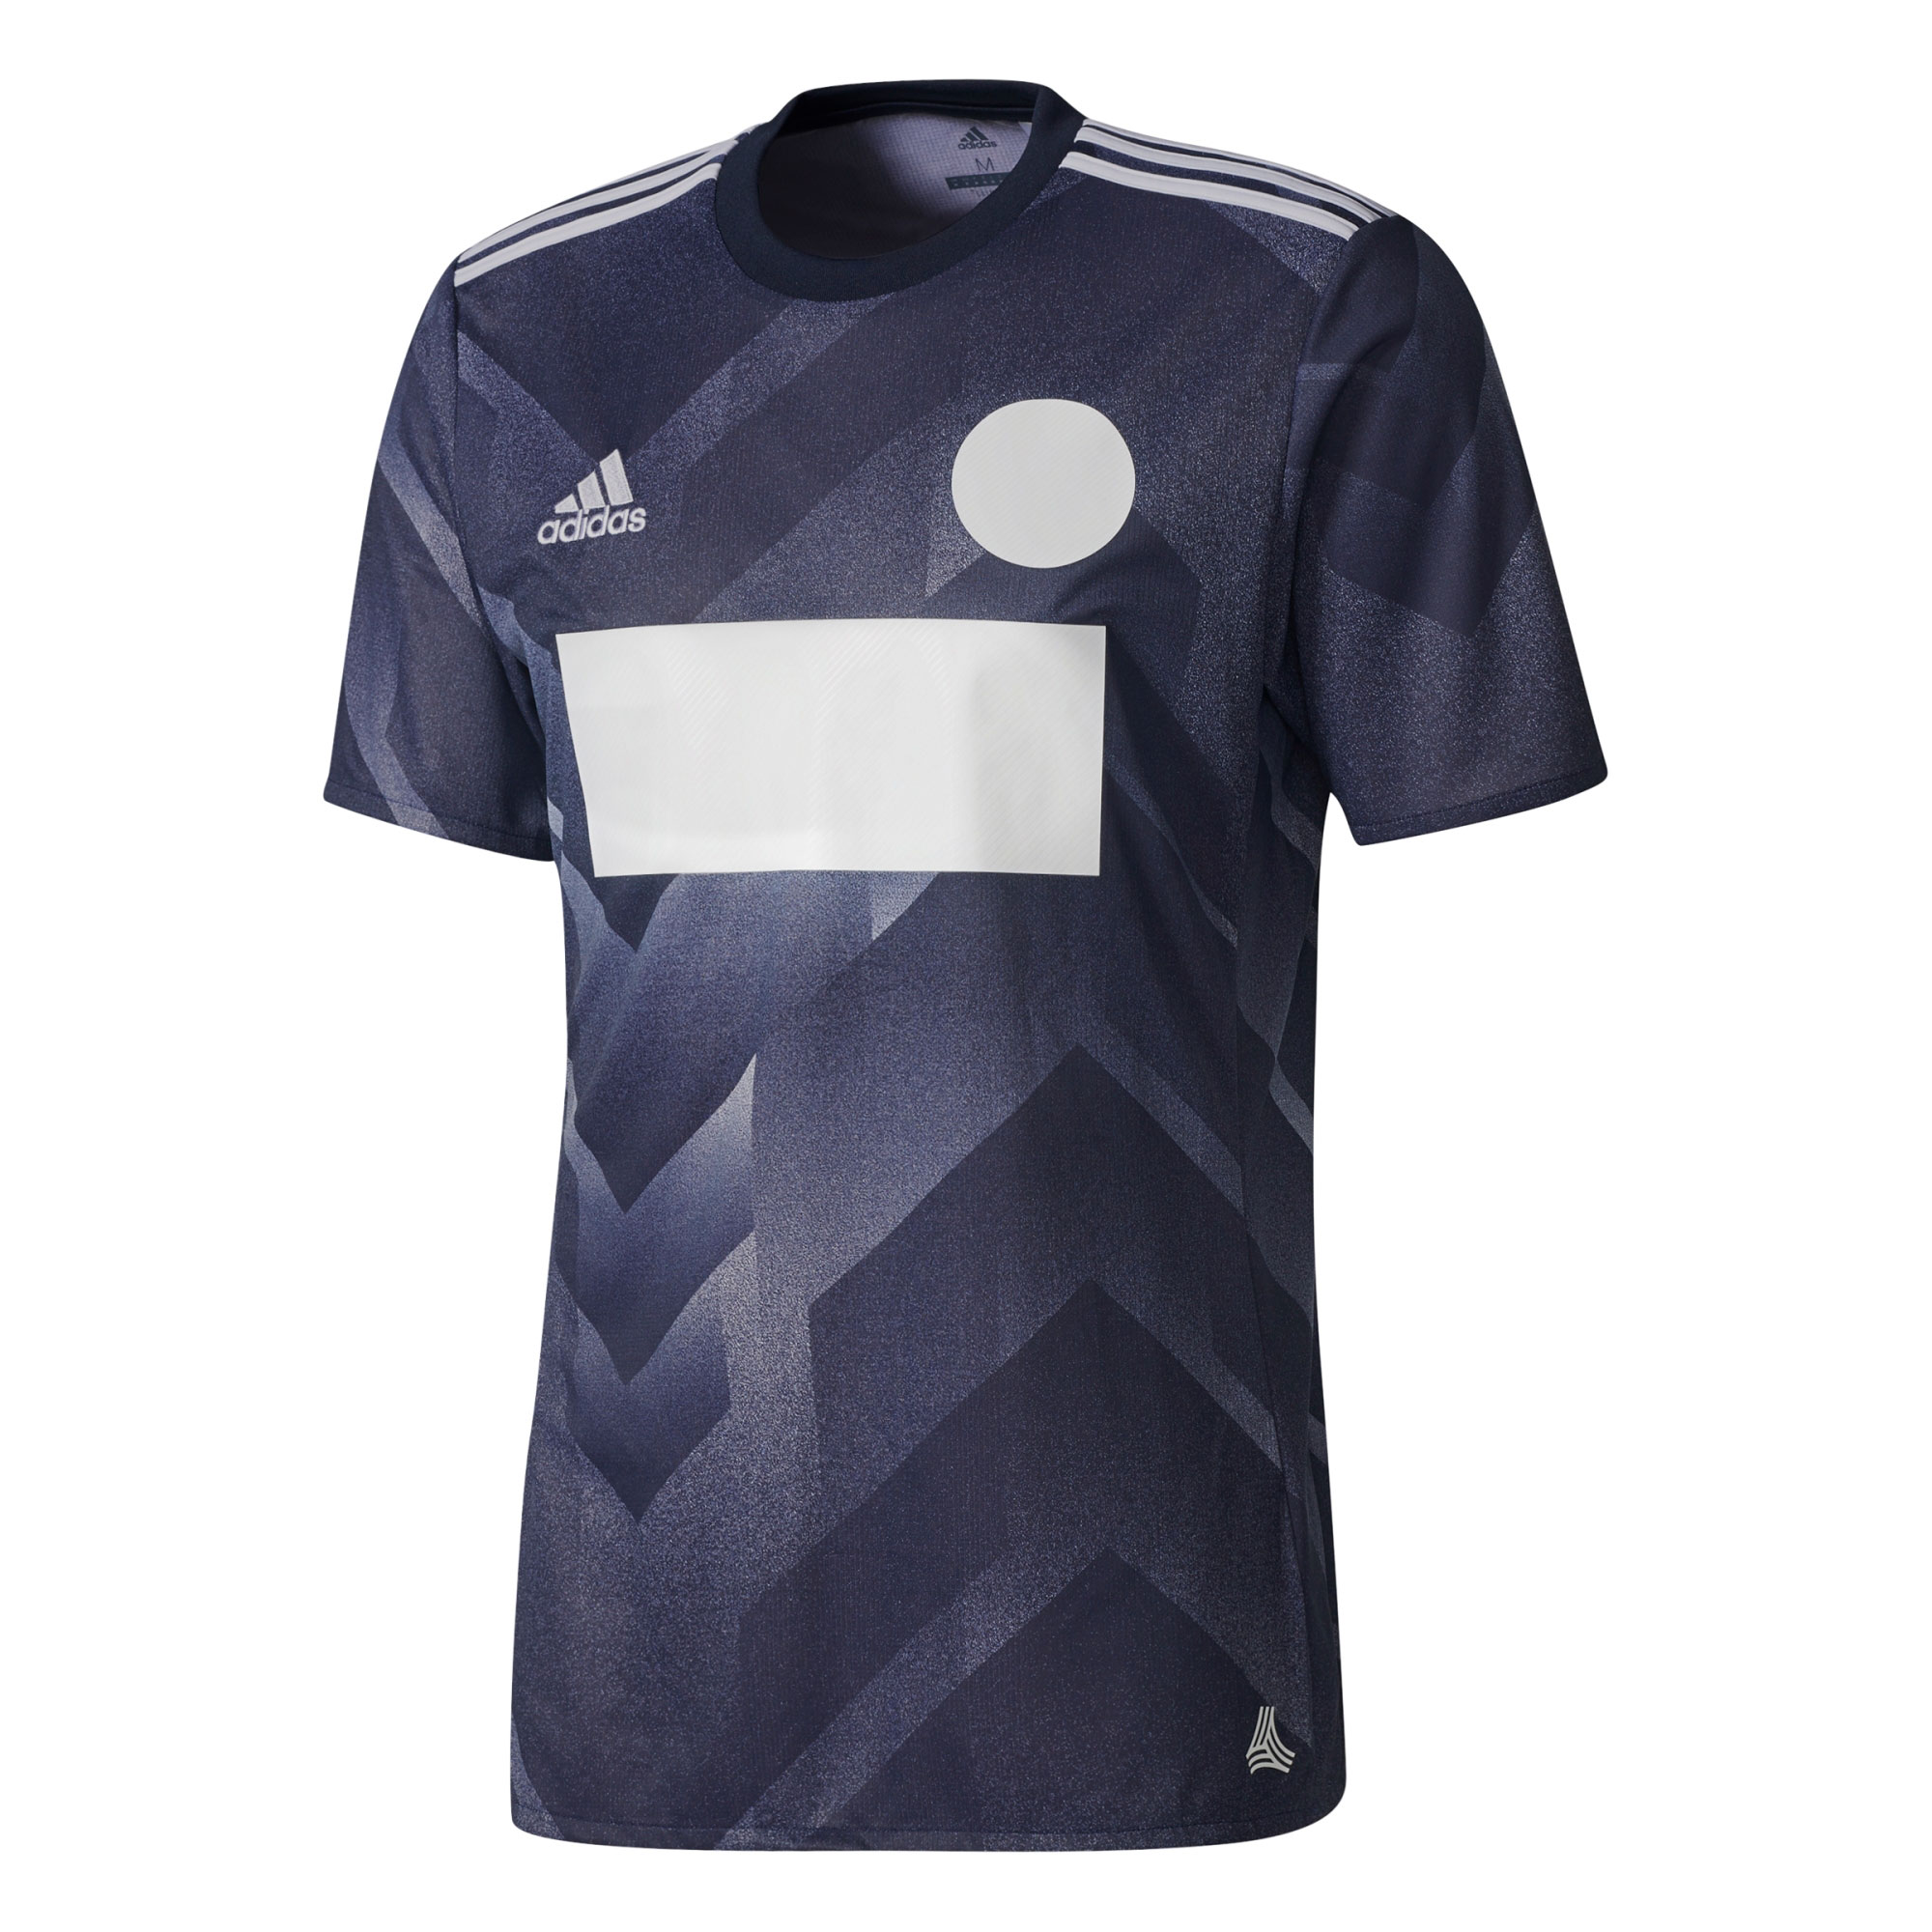 adidas Tango Player Training Top - Legend Ink